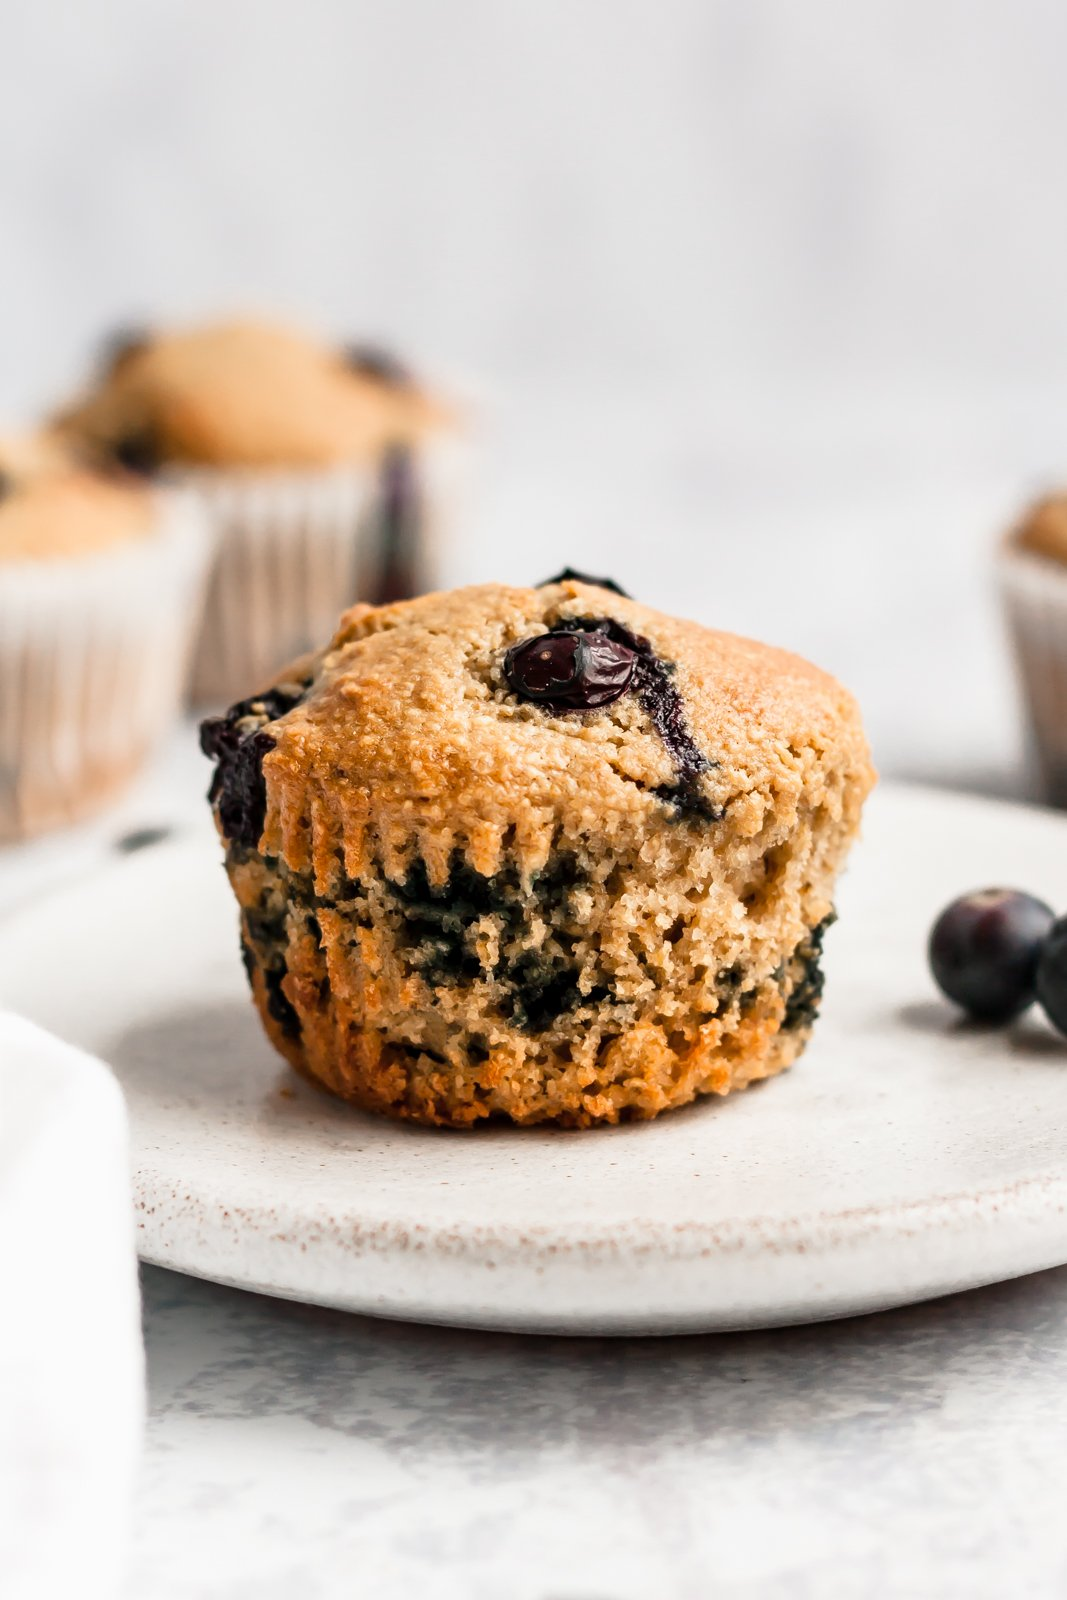 healthy blueberry muffin on a plate